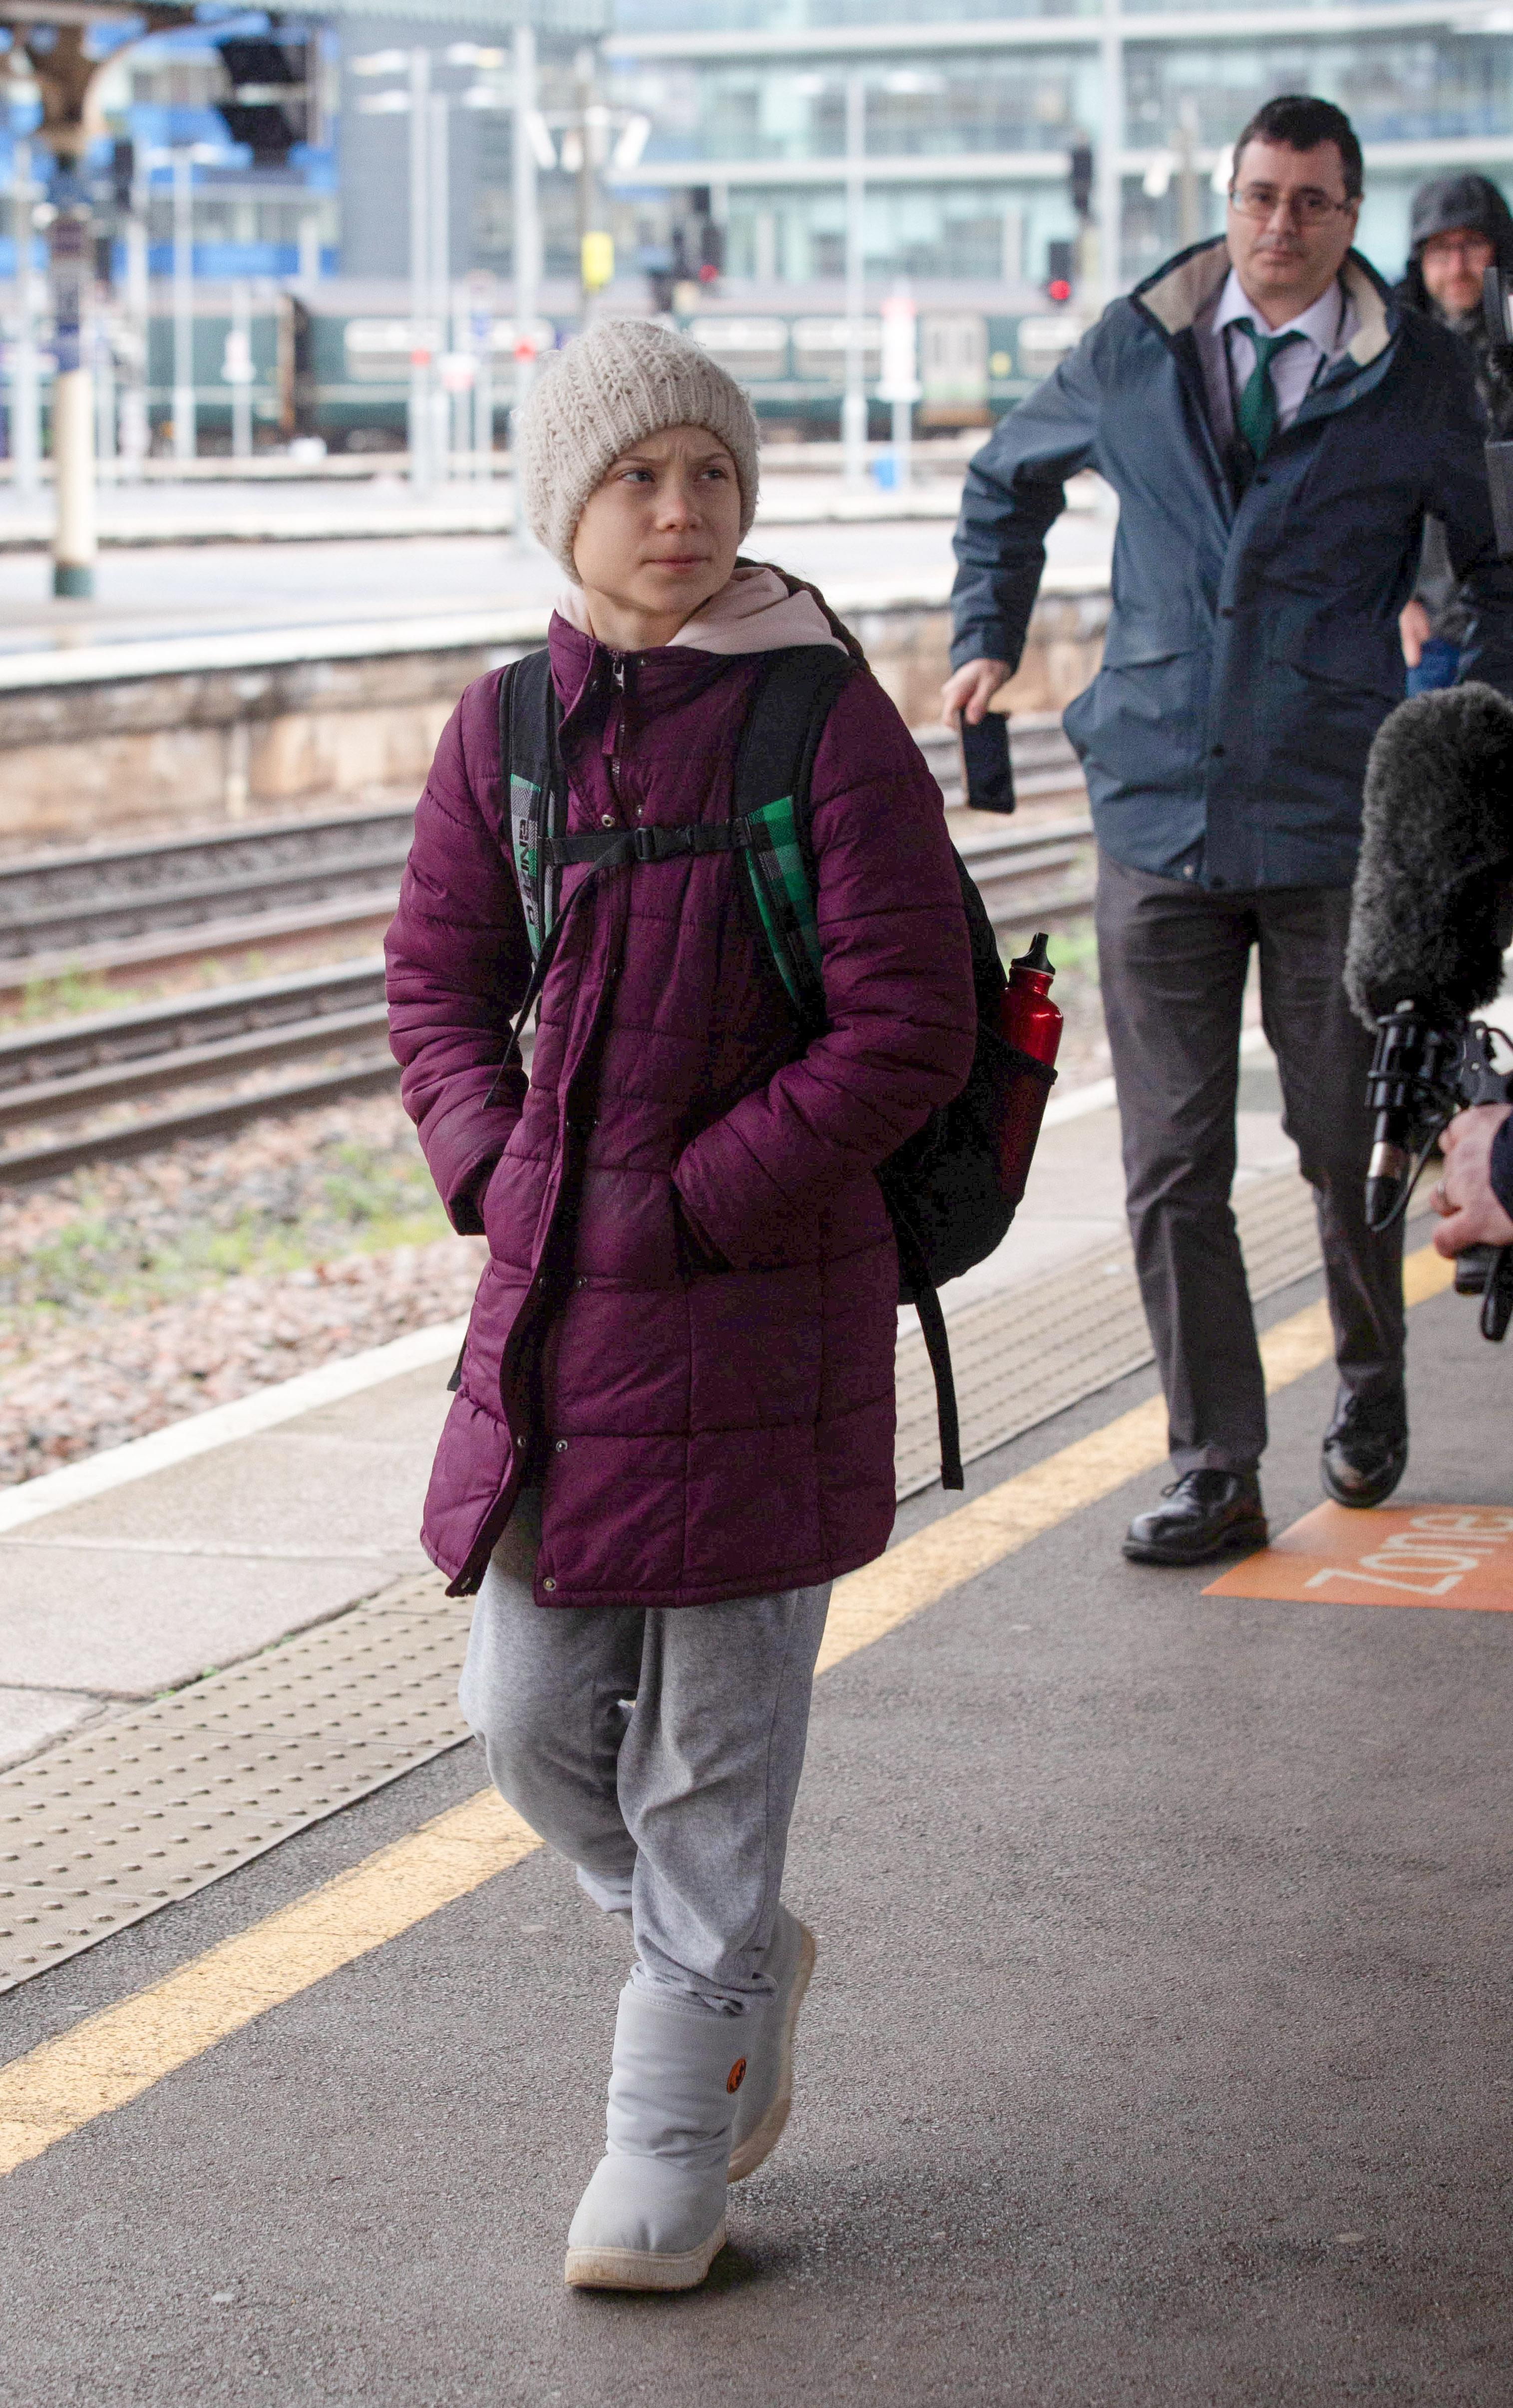 Climate campaigner Greta Thunberg arrives at Bristol Temple Meads train station. (SWNS)